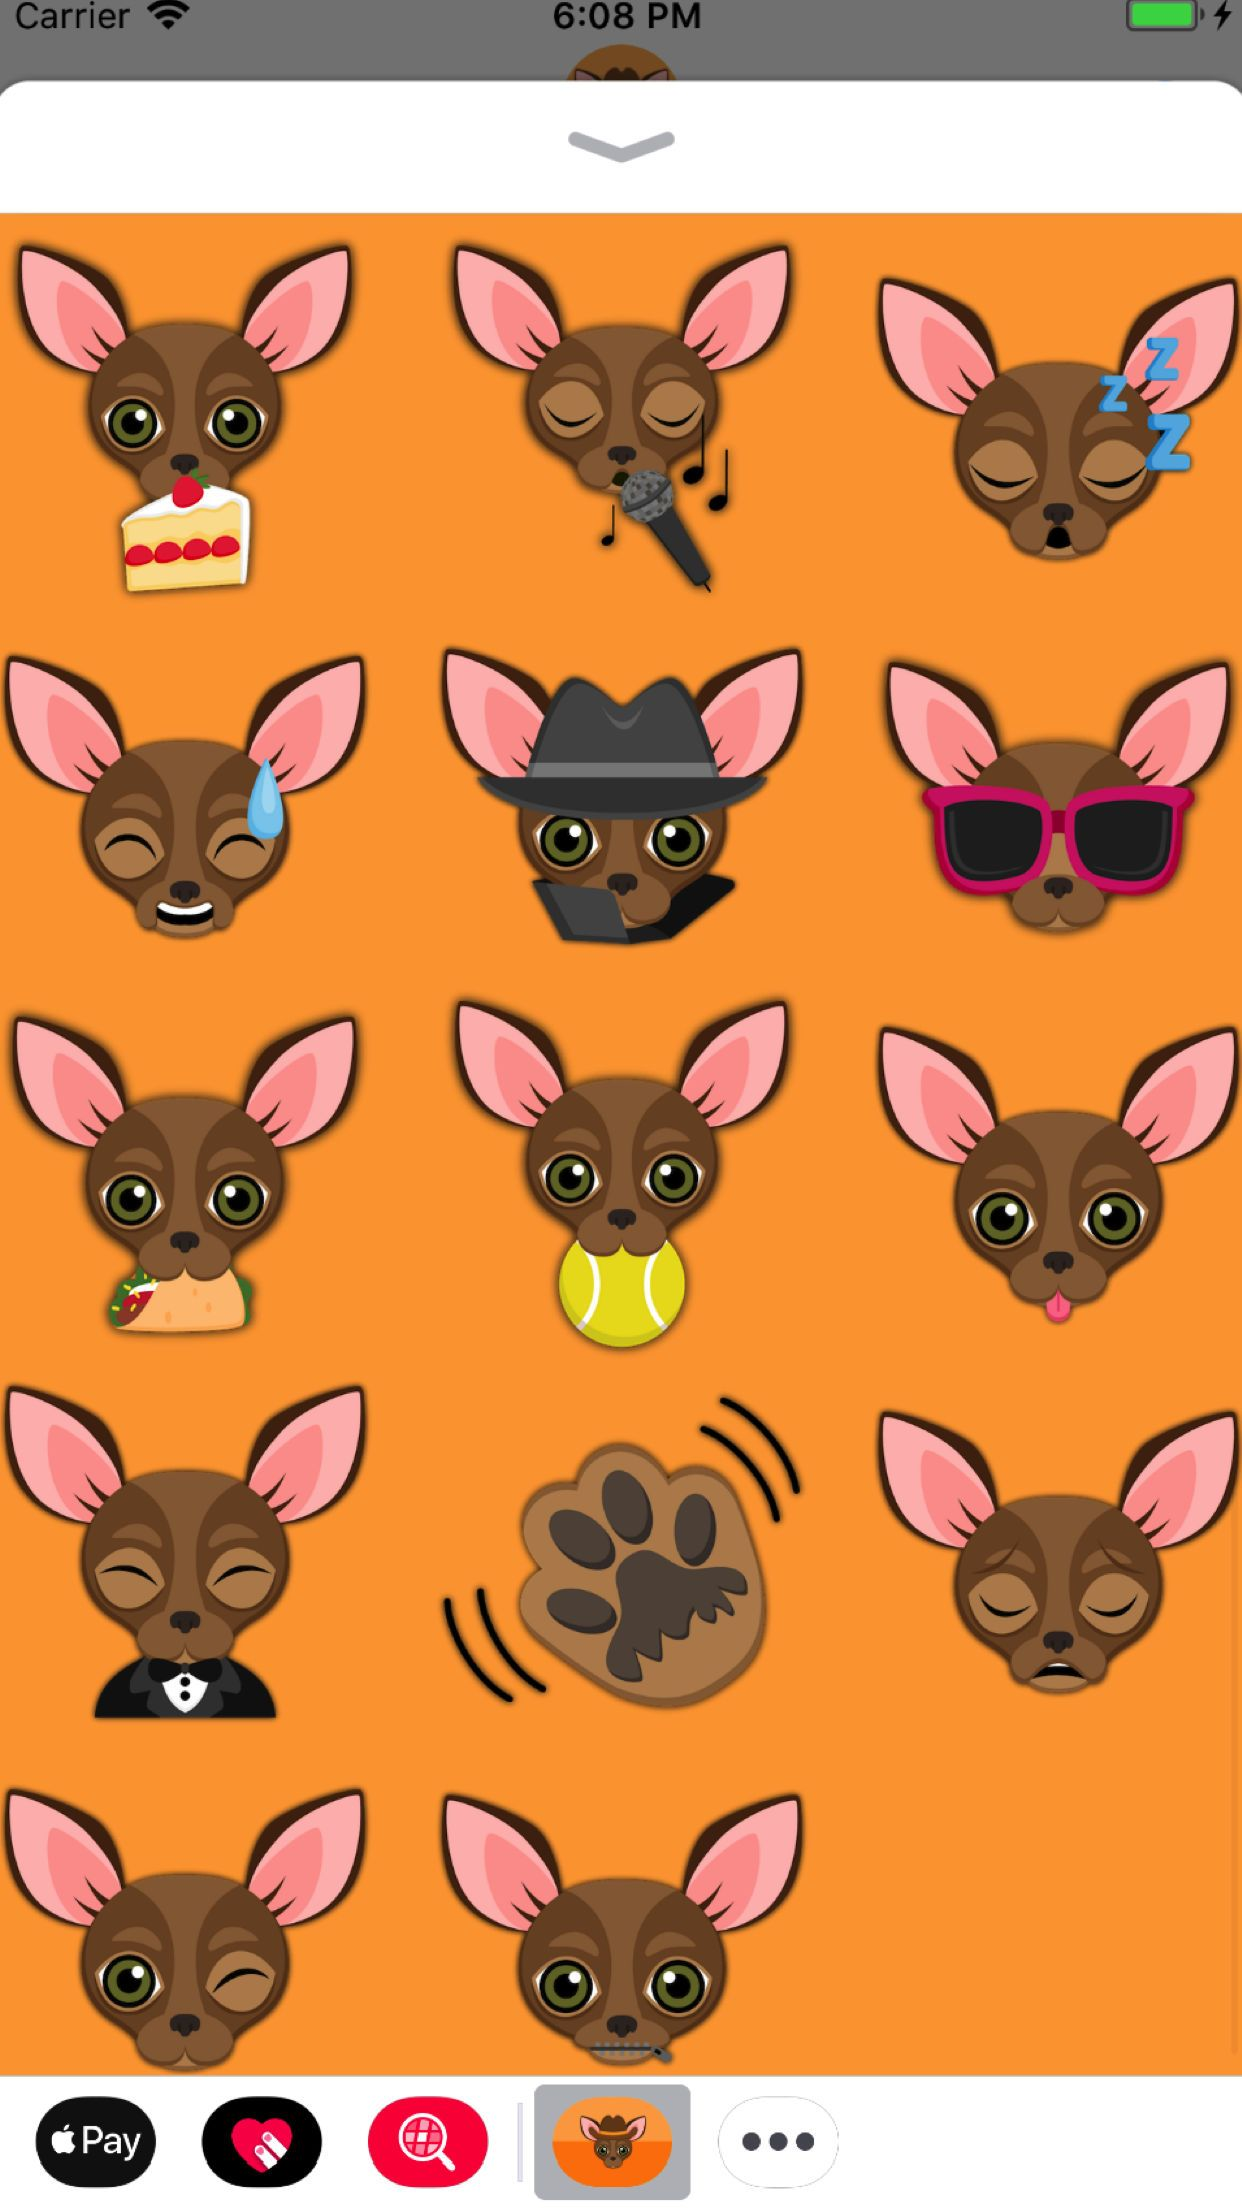 Chocolate Chihuahua Emoji Stickers for iMessage lets you